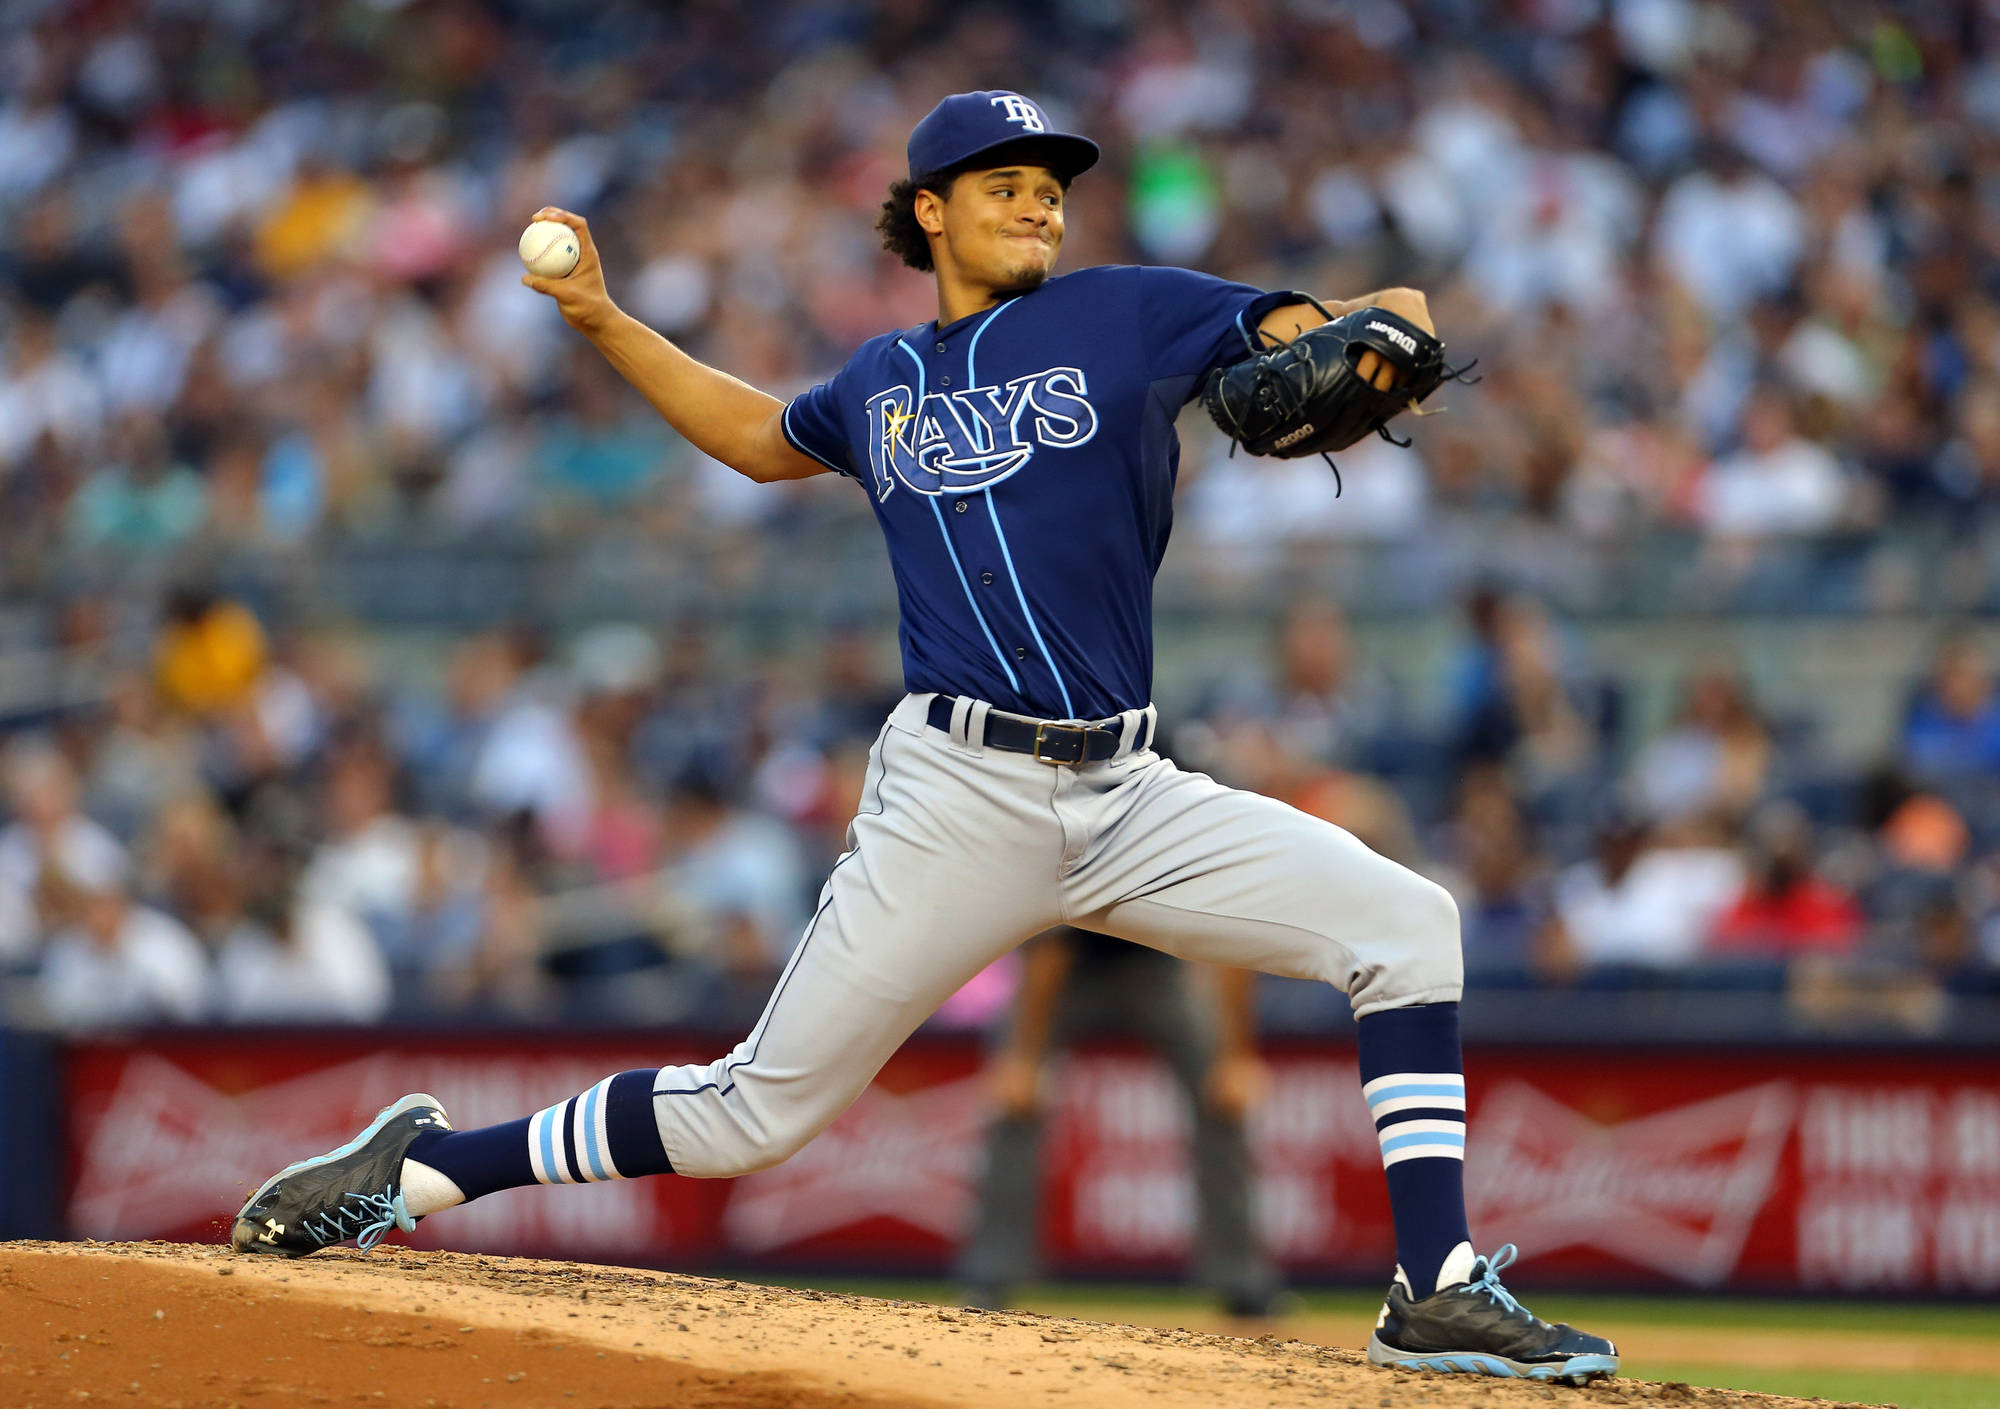 The Tampa Bay Rays traded for Chris Archer in 2011. Might they trade him away five years later? (Photo Credit: Adam Hunger/USA Today Sports)